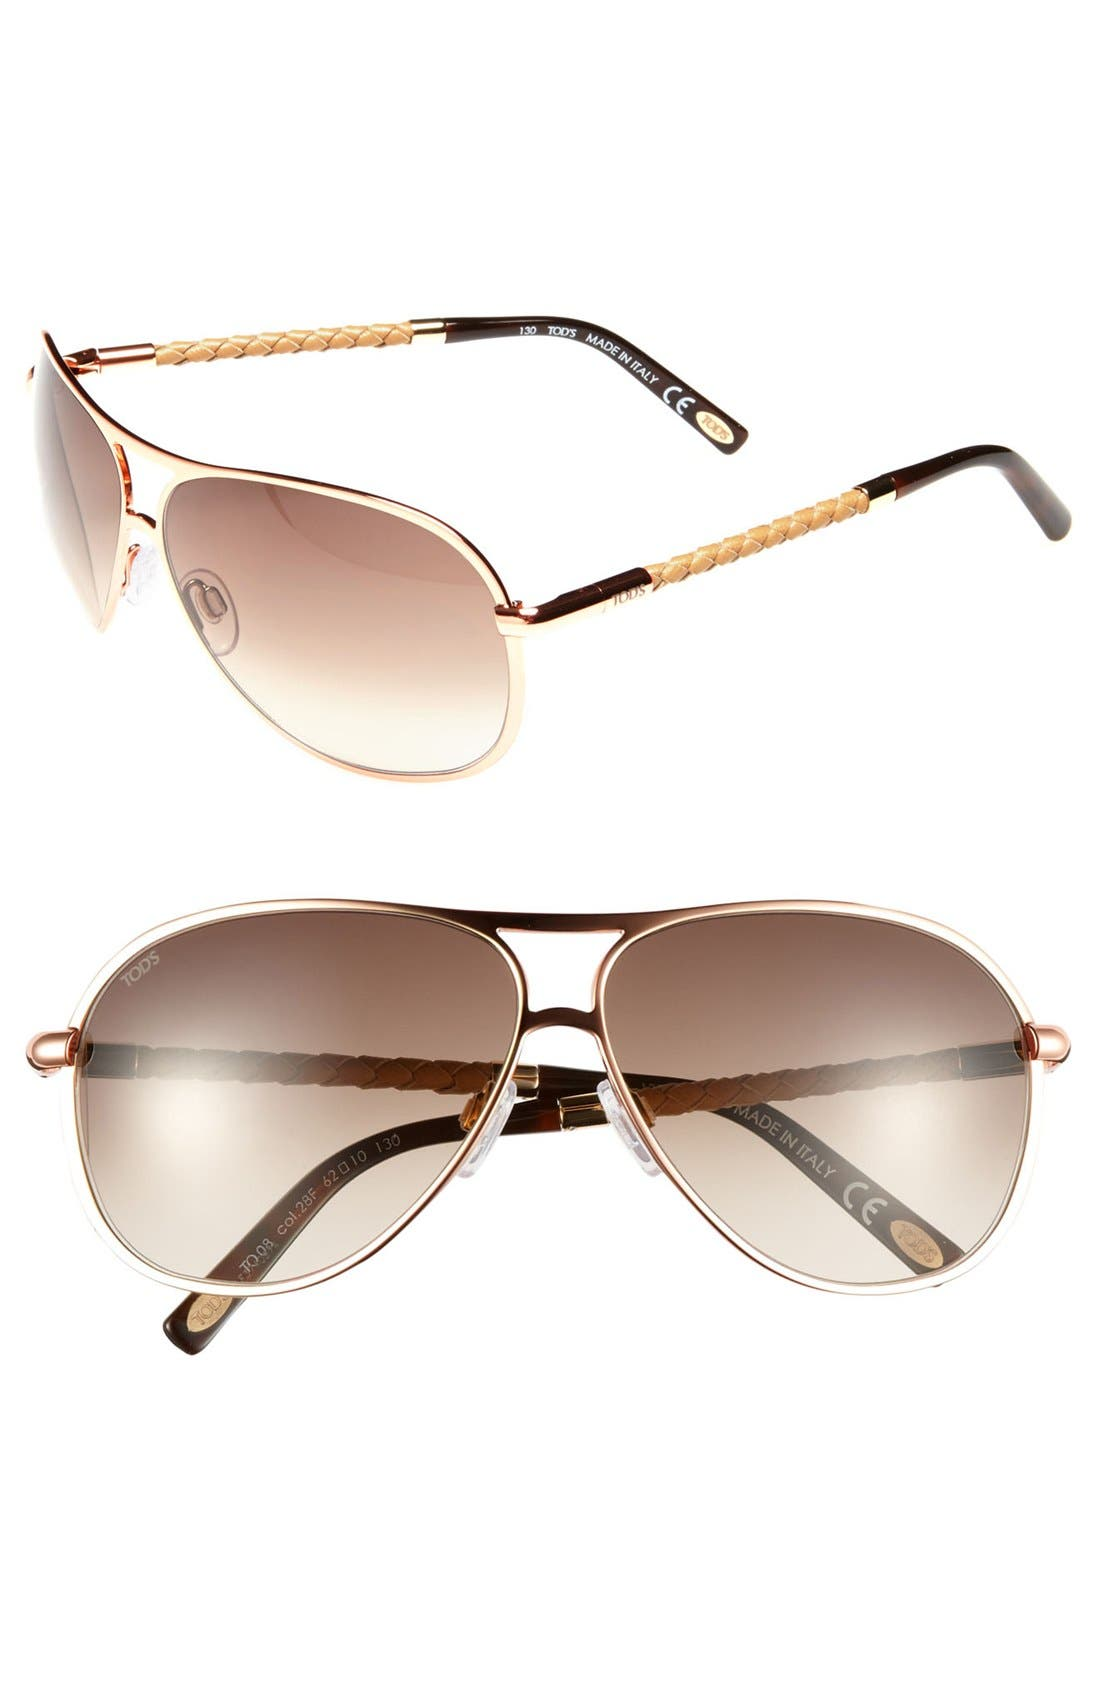 Alternate Image 1 Selected - Tod's 60mm Woven Leather Temple Aviator Sunglasses